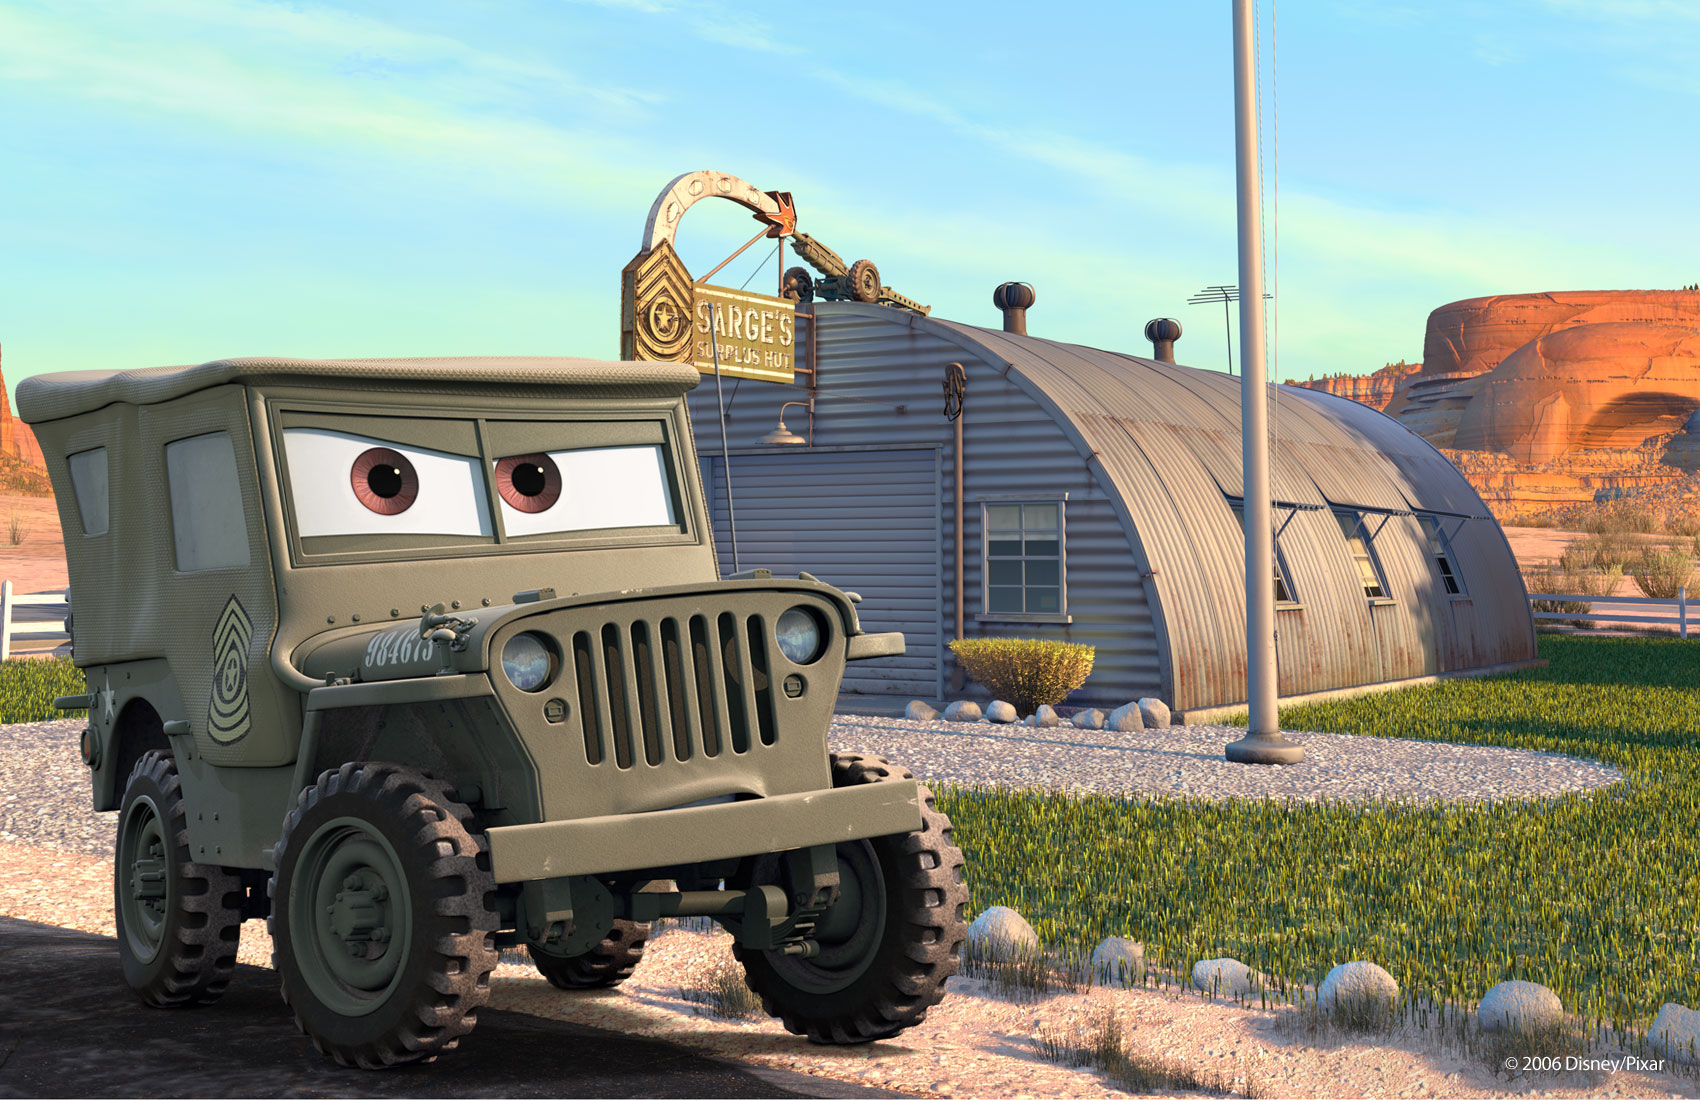 Sarge from 'Cars'.